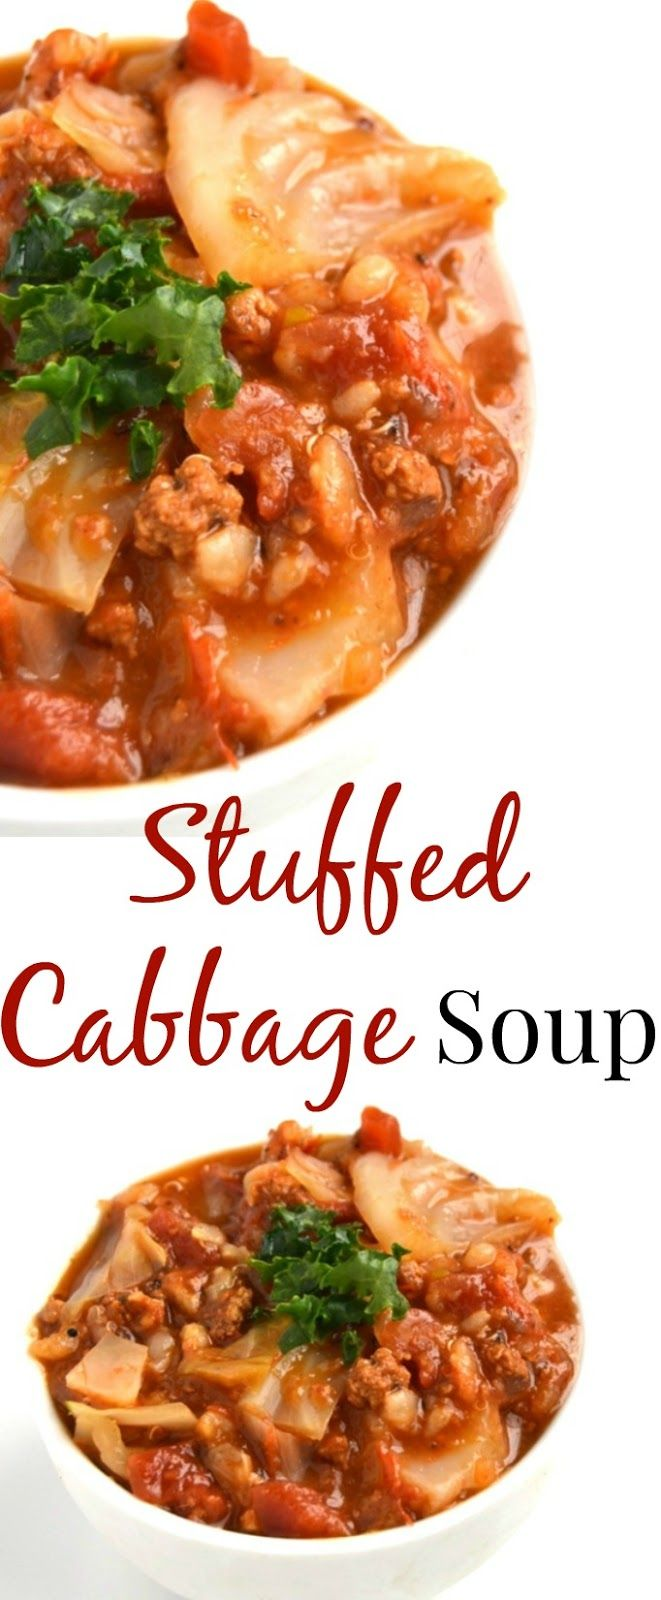 This Stuffed Cabbage Soup is simple to make, is nutritious and full of flavor. Make a big pot for the week ahead for quick and easy meals. www.nutritionistreviews.com